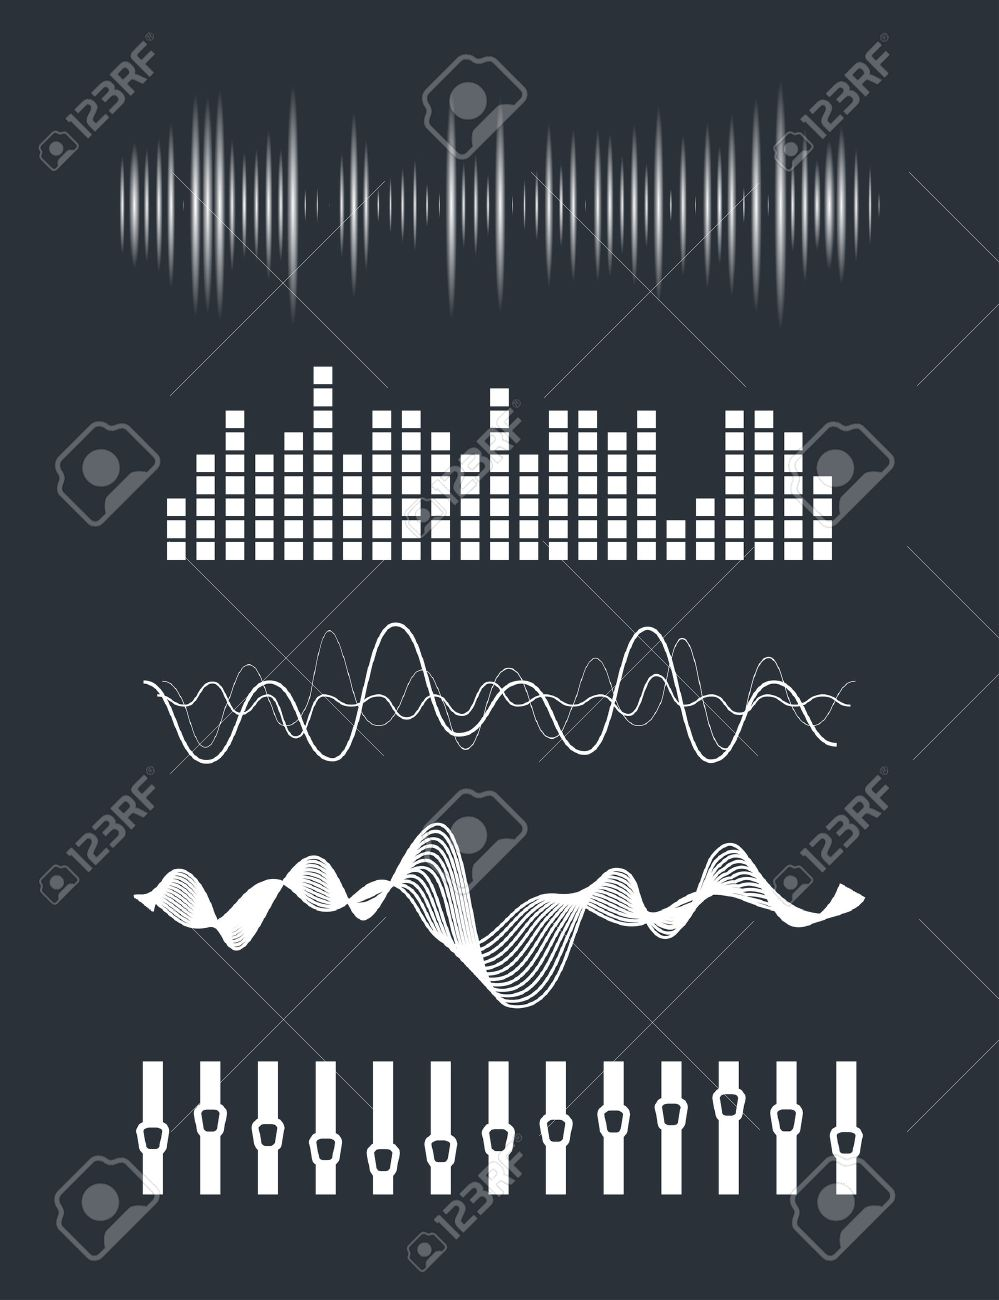 Vector music sound waves set. Audio digital equalizer technology, console panel, pulse musical. - 46084992